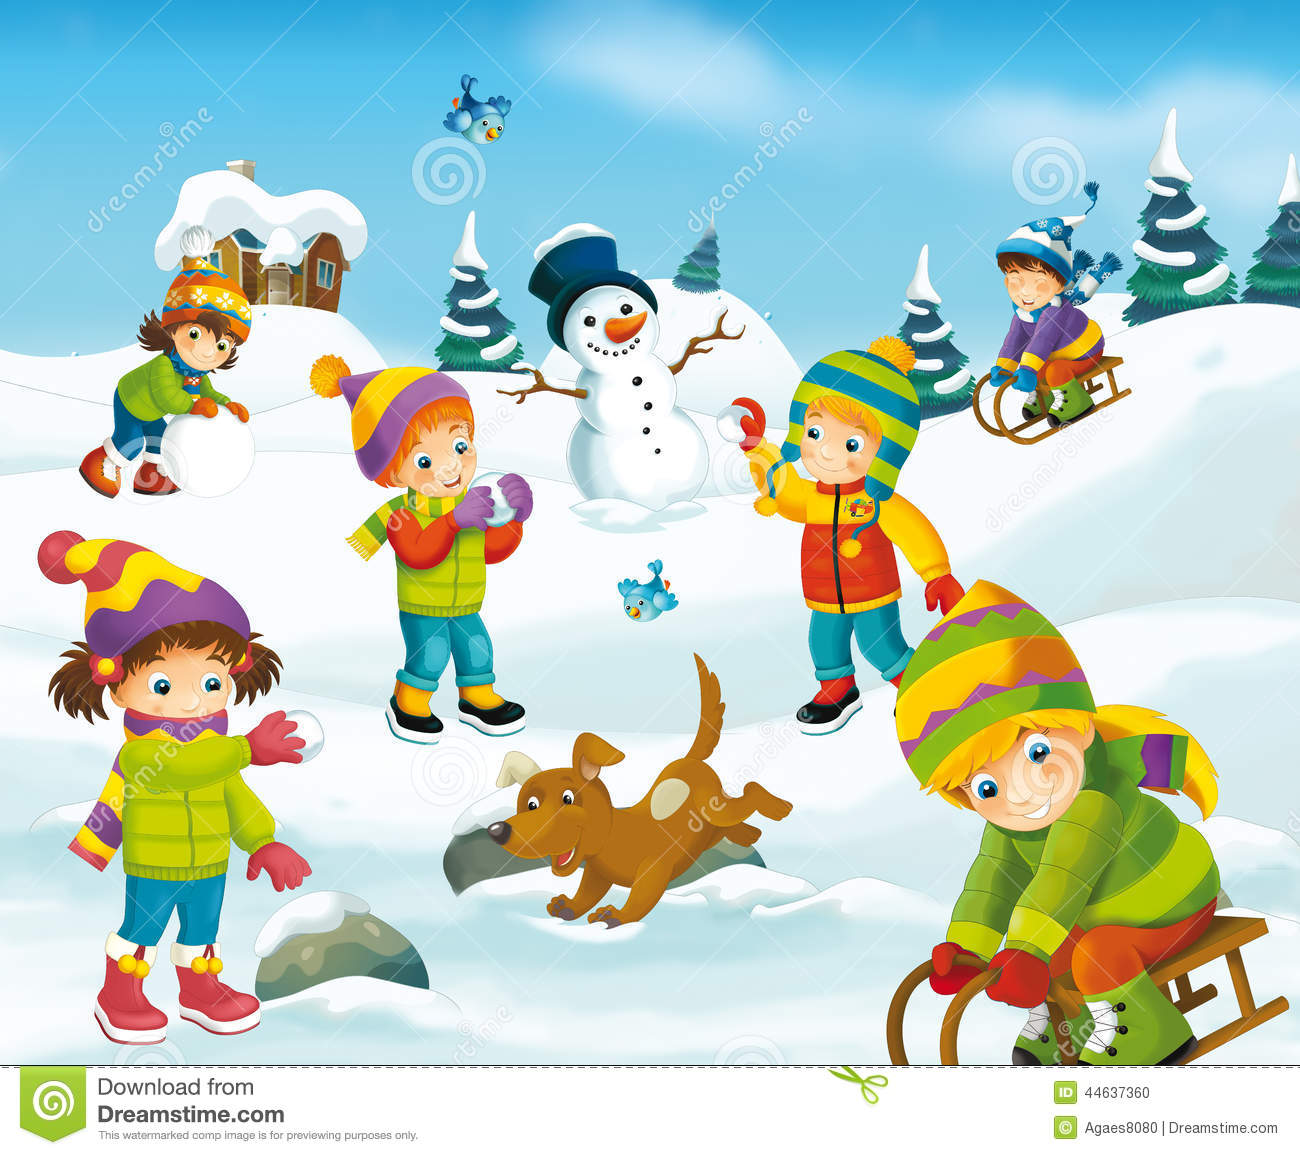 Winter Cartoon Scene Stock Illustration - Image: 44637360